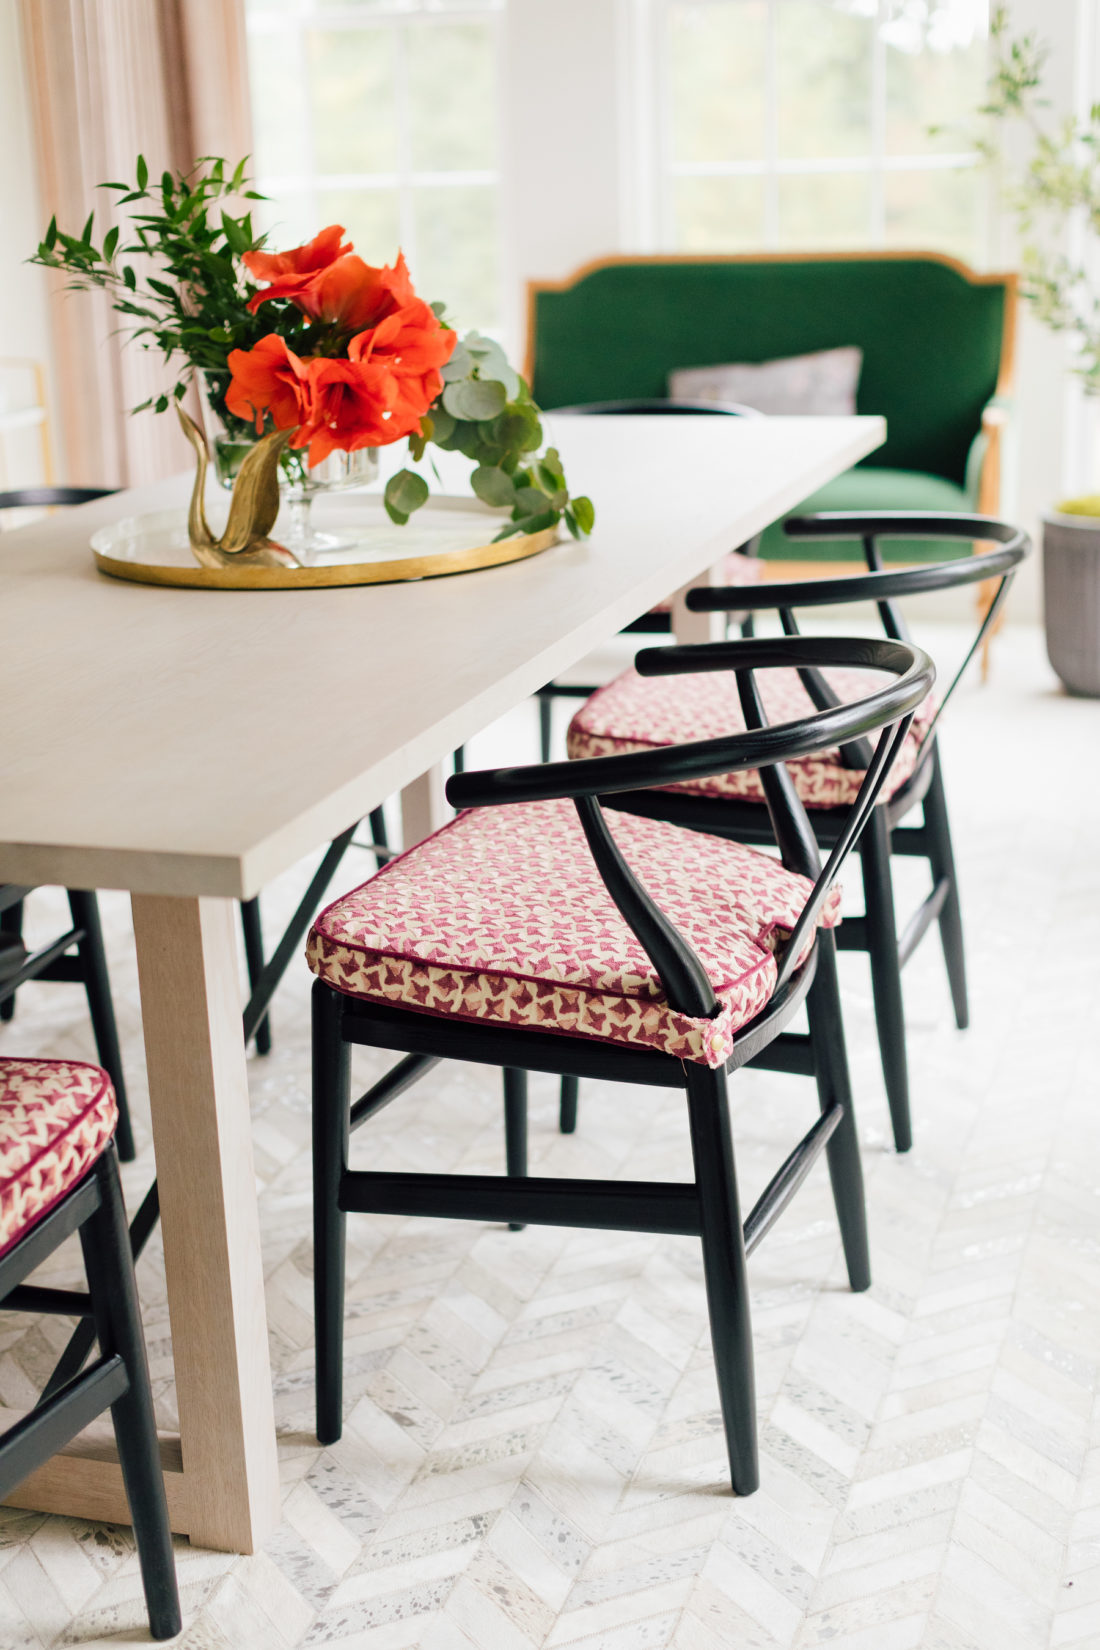 The custom cushions on the dining chairs in Eva Amurri Martino's newly renovated dining room